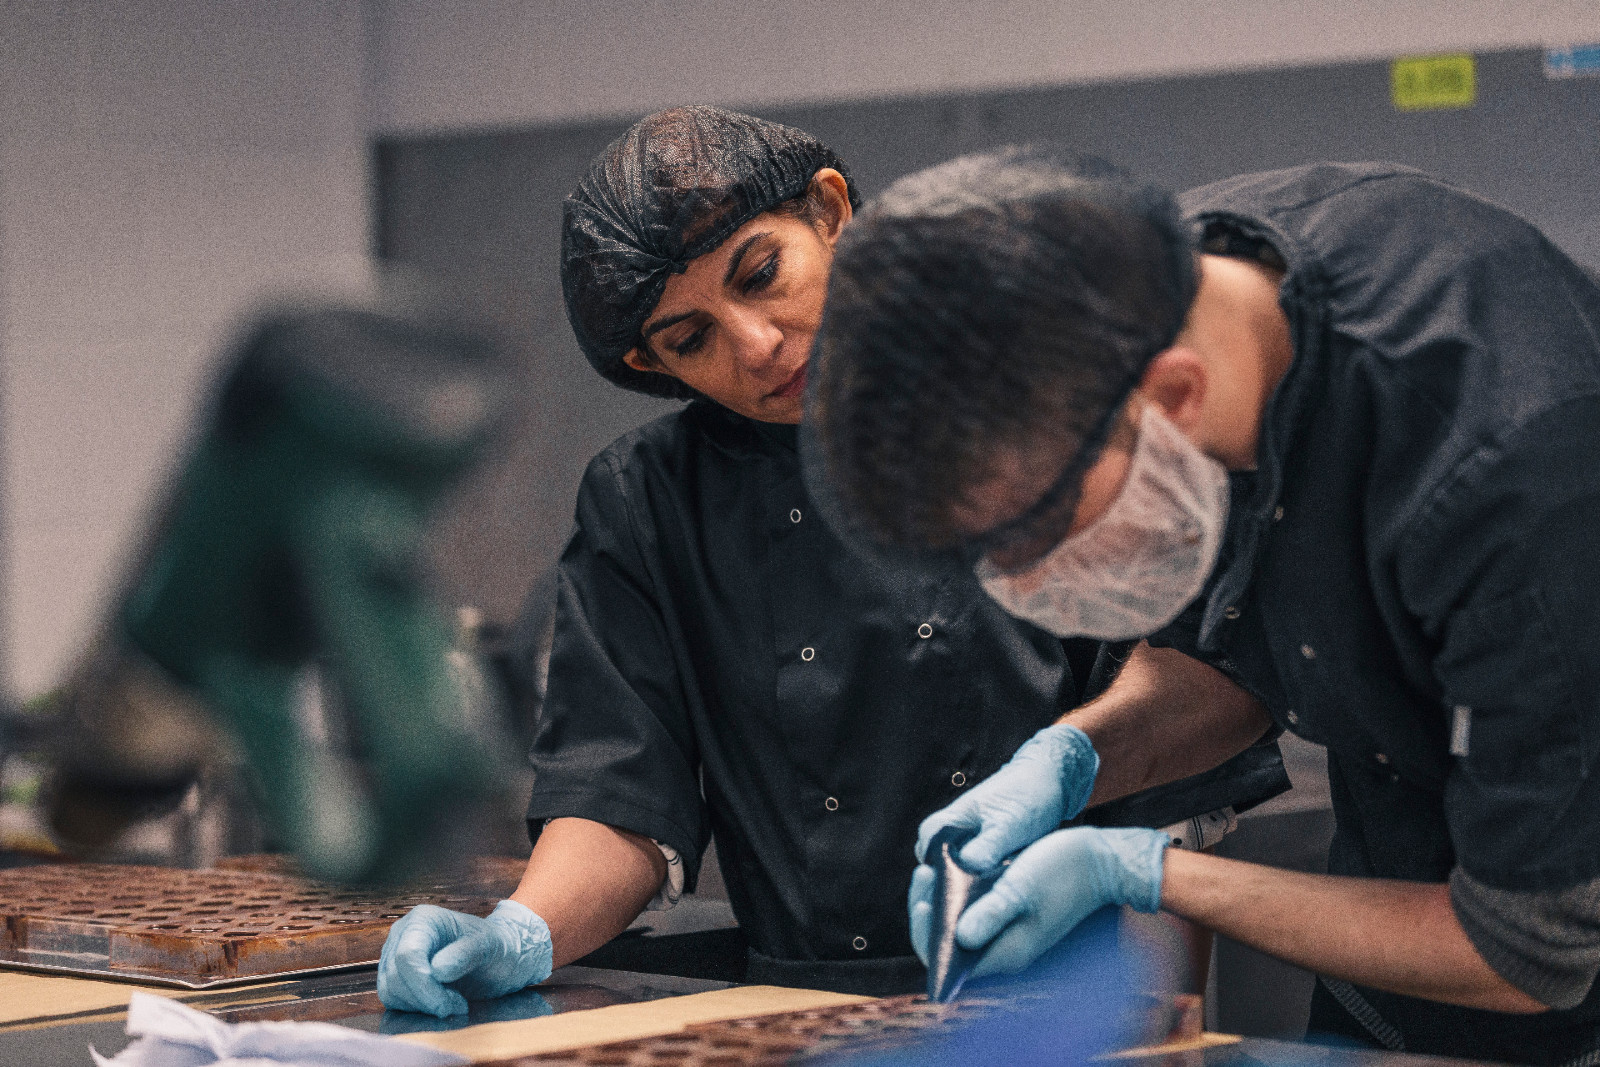 Mona Shah in protective gear and blue gloves looks across at young man in similar outfit who is bending over and piping chocolates in the factory.